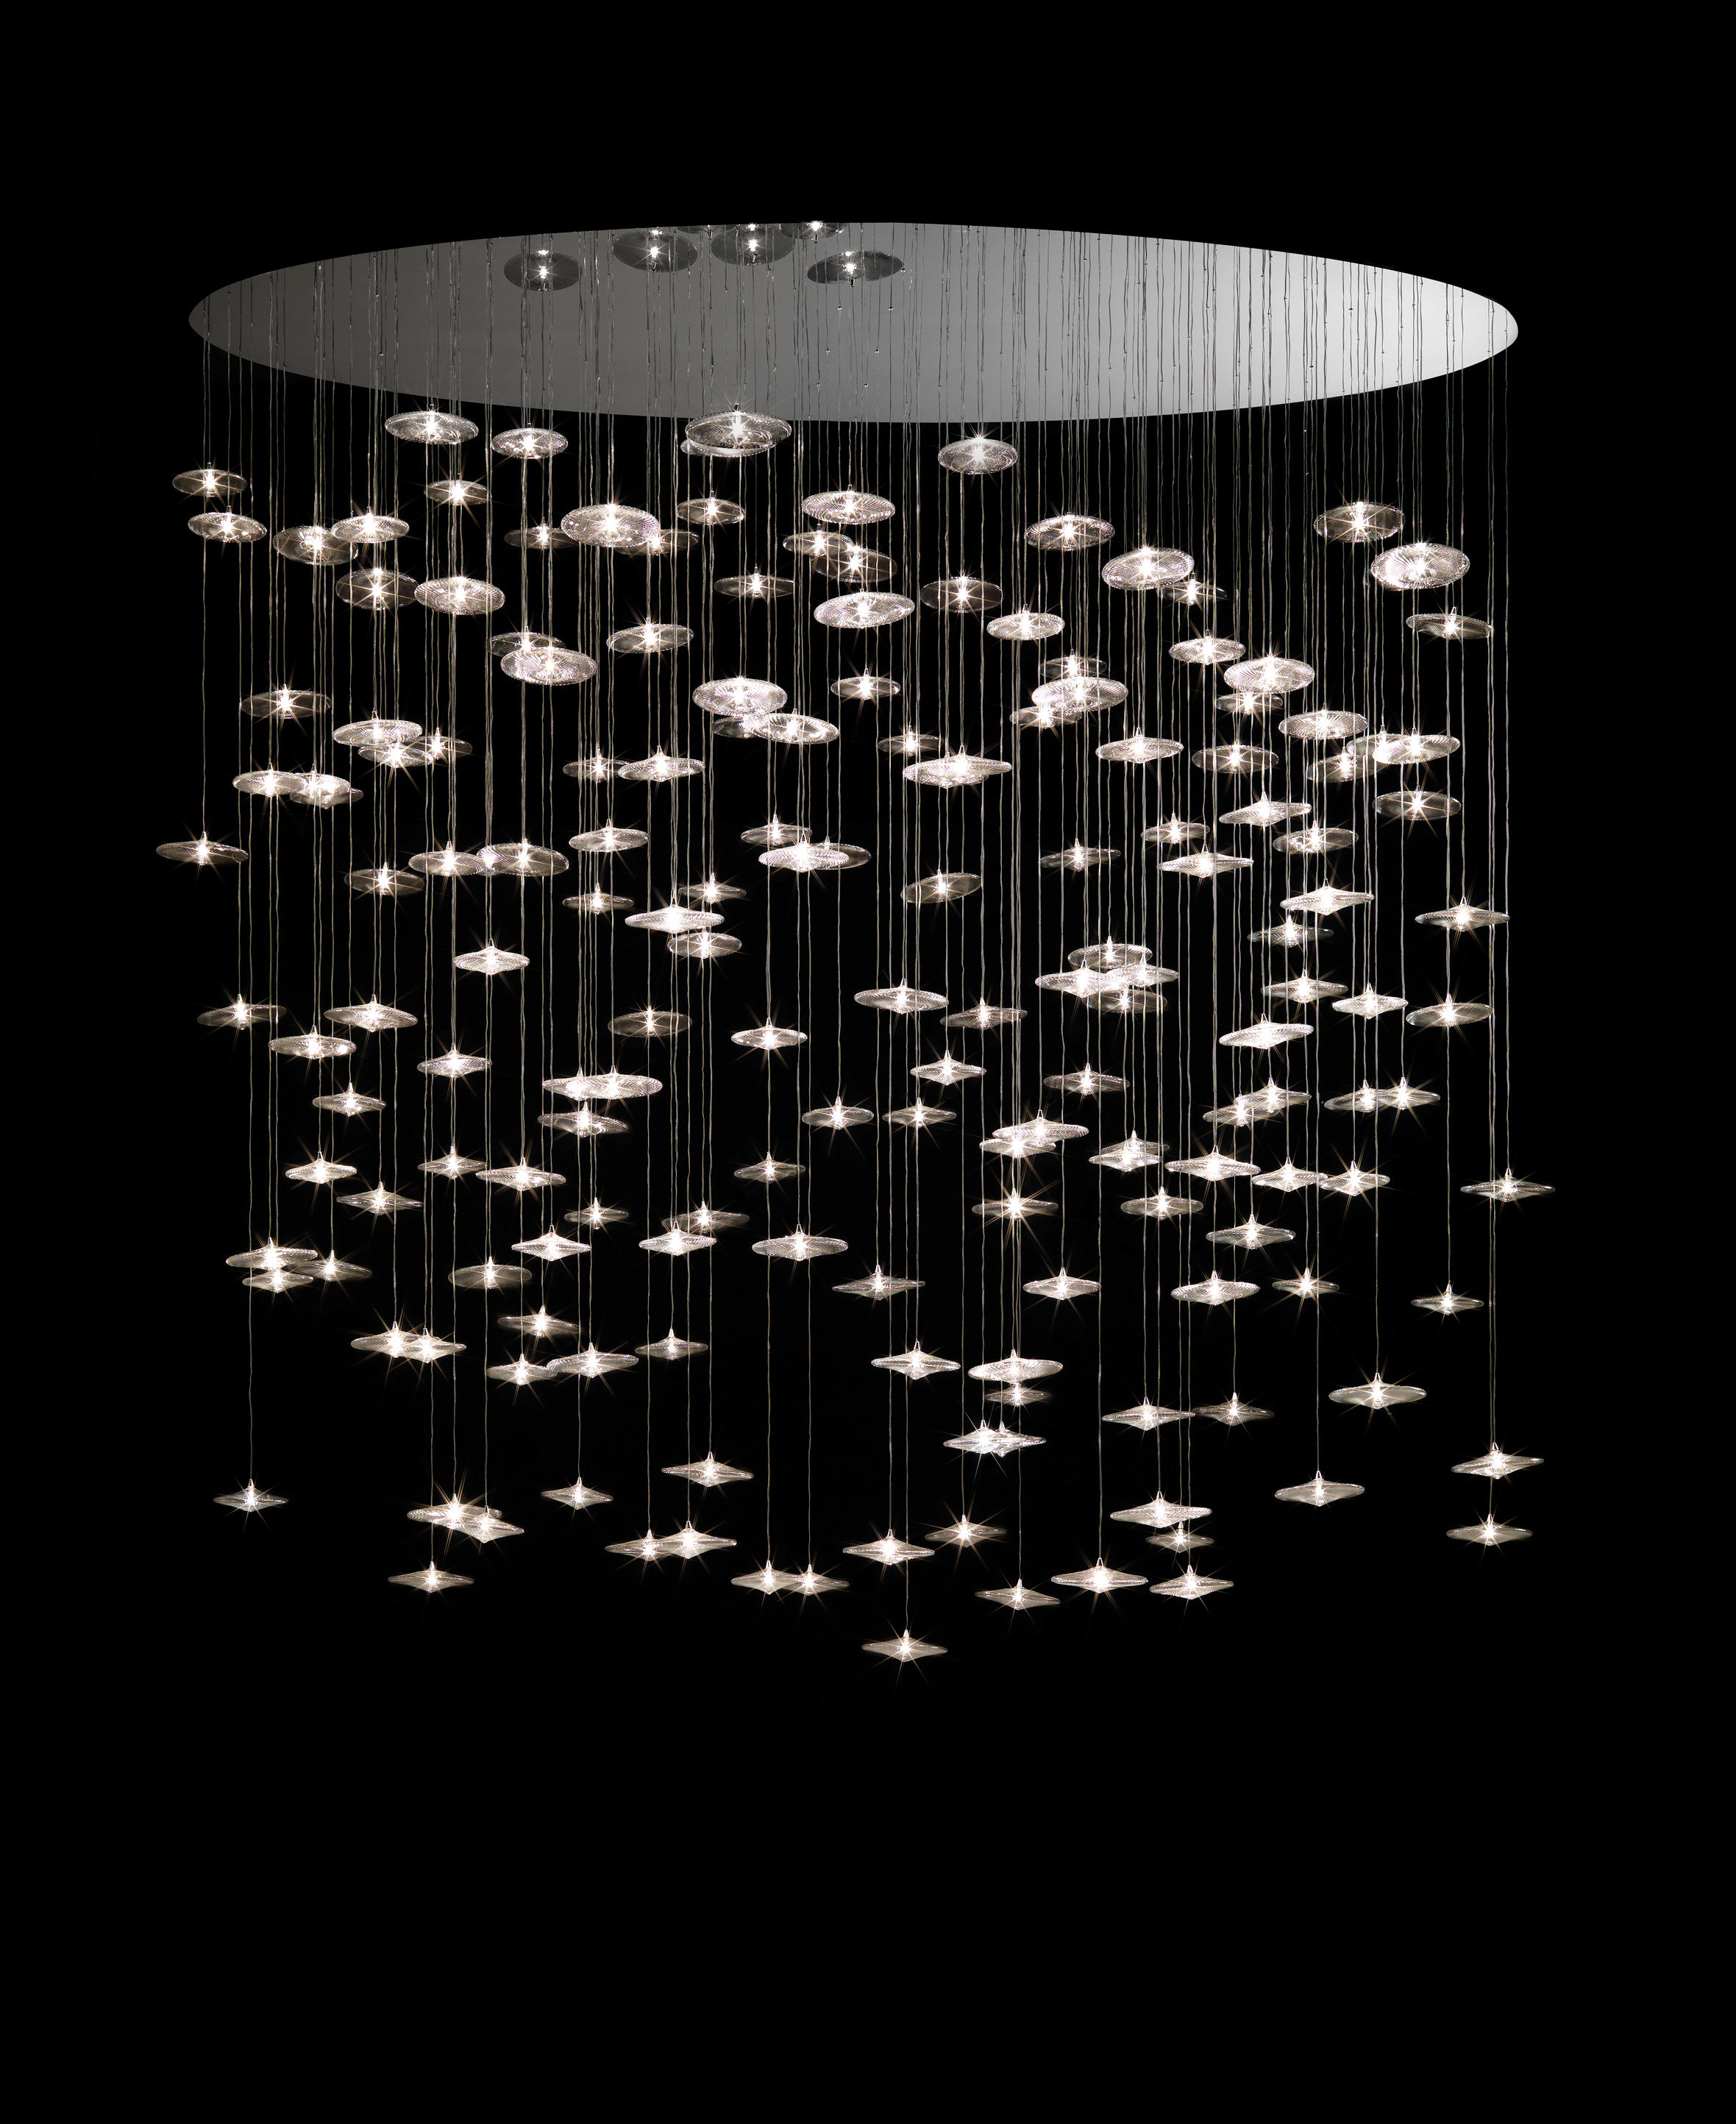 Ambient images & SIRIUS - General lighting from Reflex | Architonic azcodes.com